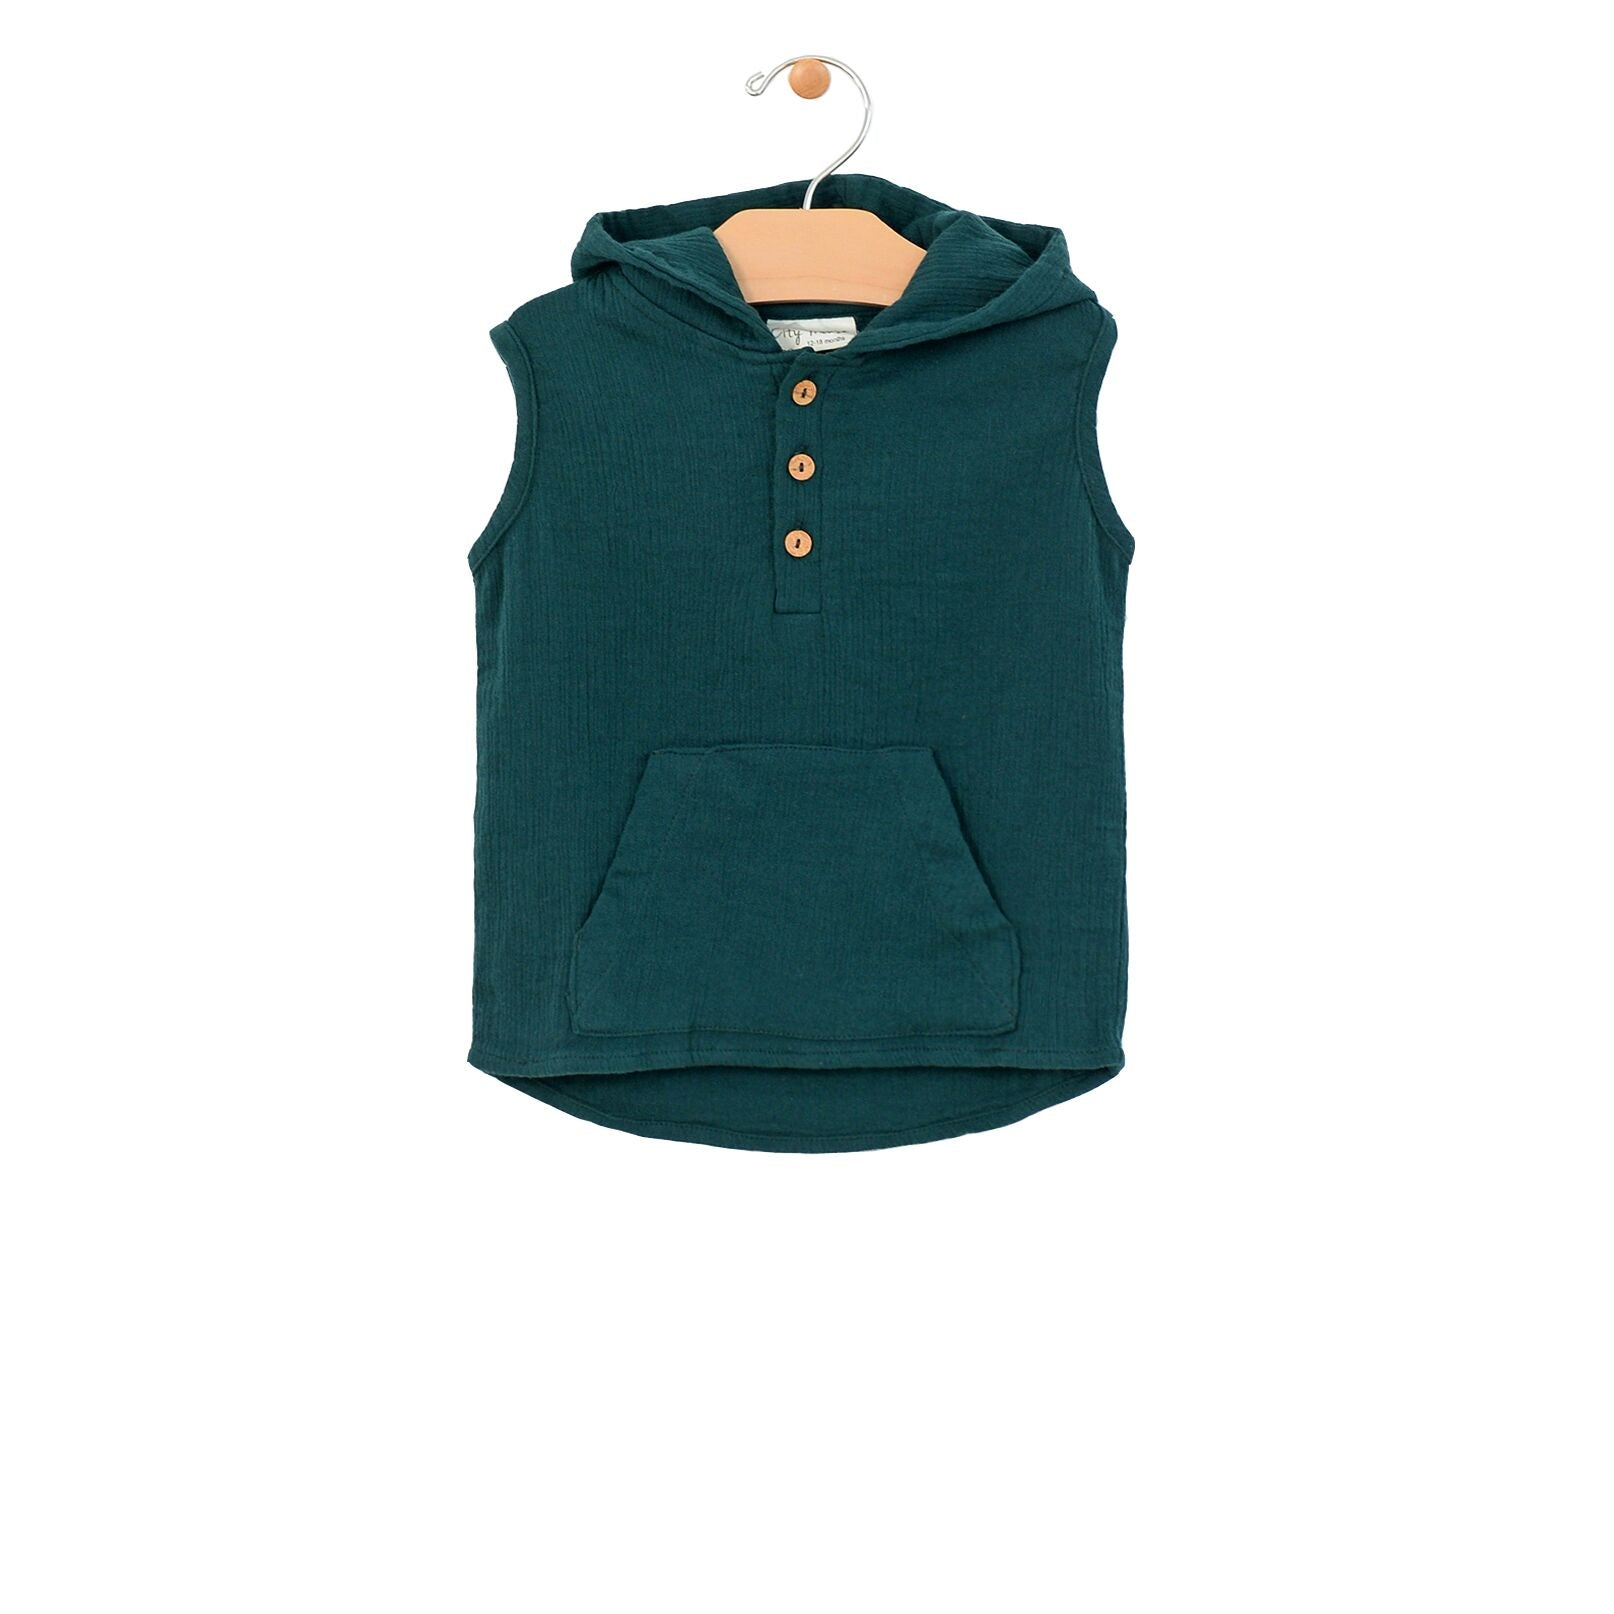 Crinkle Cotton Hooded Henley